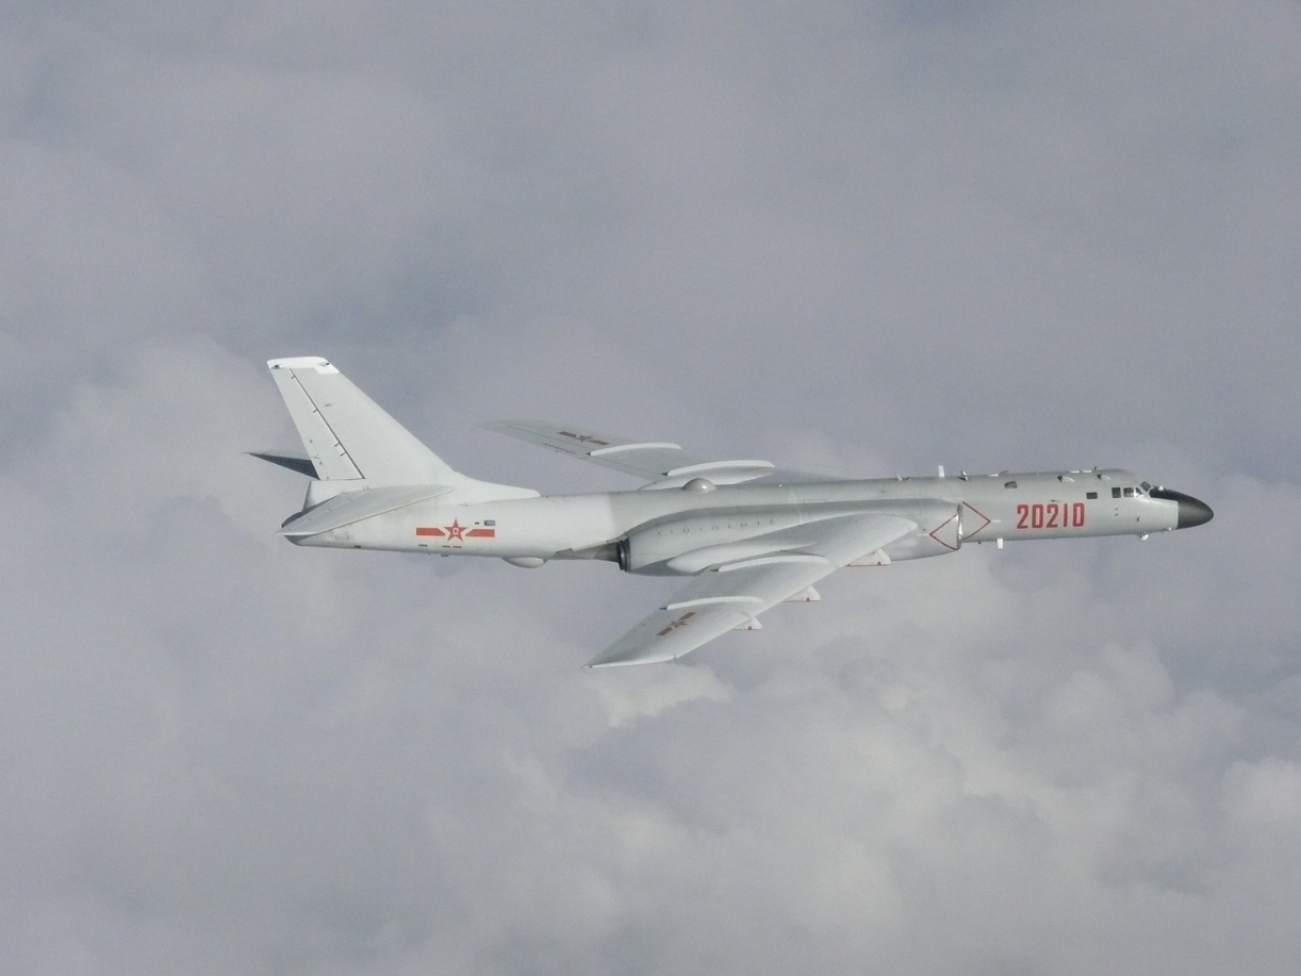 New Modifications to China's H-6 Bombers Make Them A Serious Threat to America's Navy